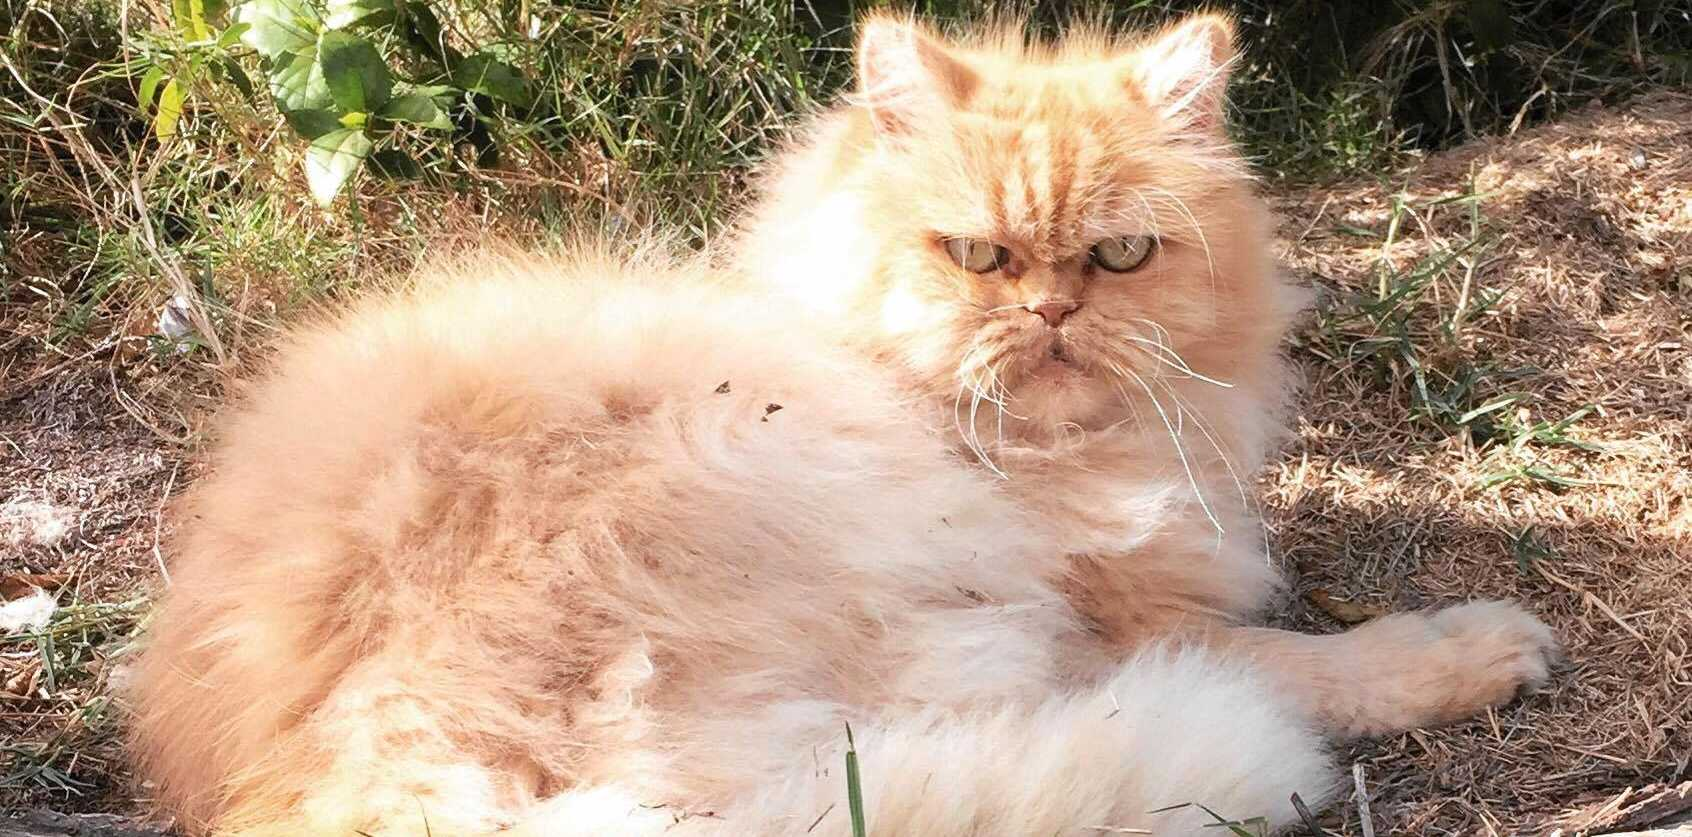 CAT ATTACK: Michelle Sutton's cat Herbie died after two dogs mauled it.